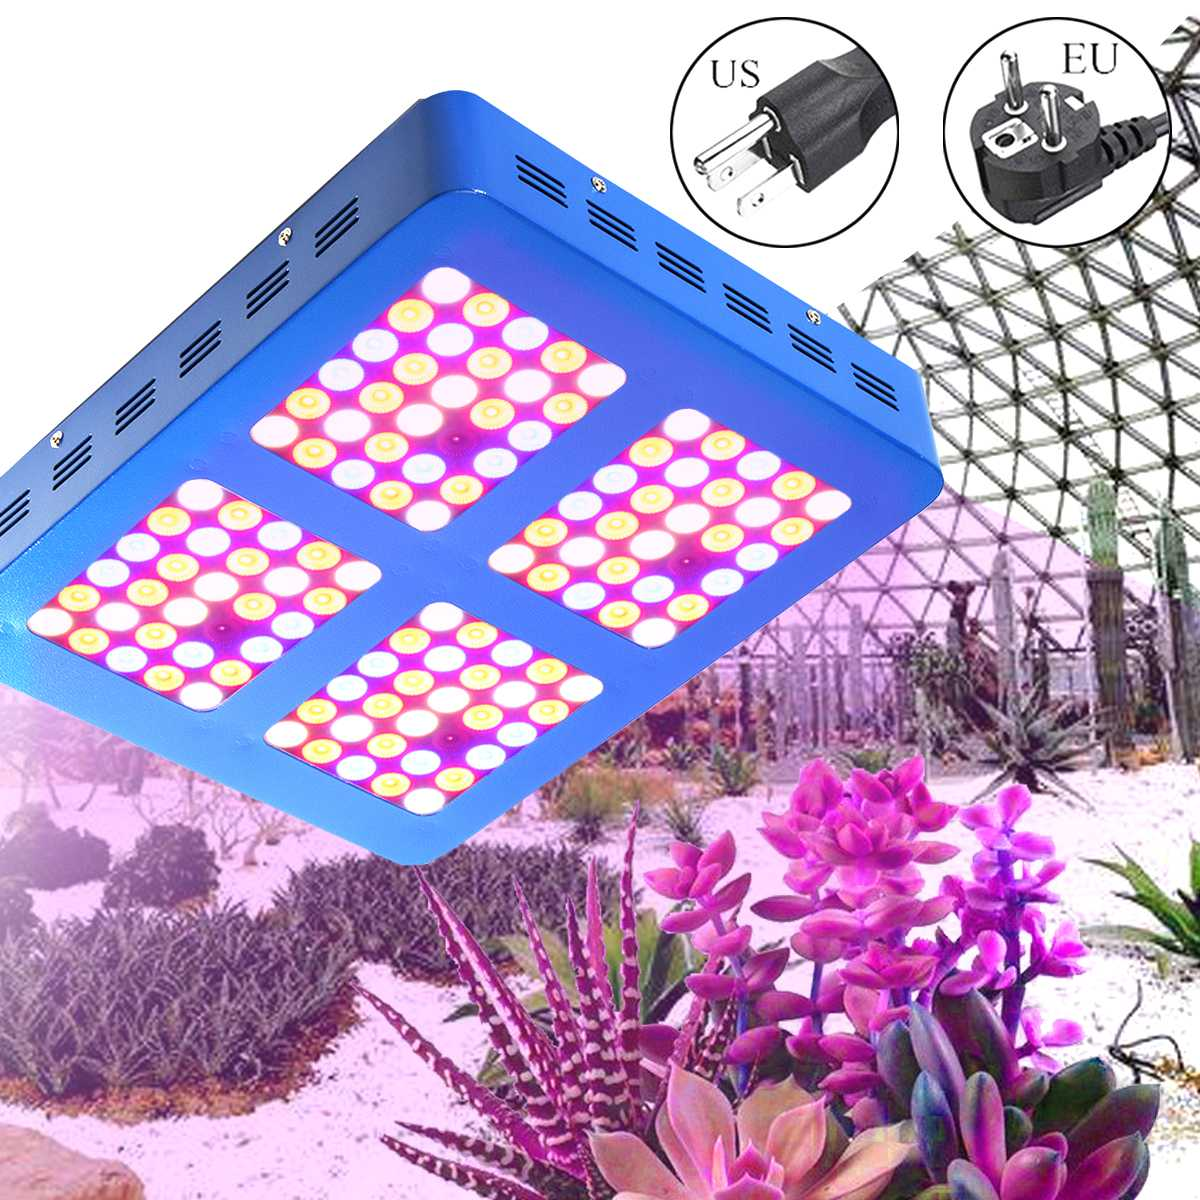 Mising LED Grow Light 600W Full Spectrum Hydroponics For Indoor Greenhouse Grow Tent Plants Grow LED Light Succulents Bloom 200w full spectrum led grow lights led lighting for hydroponic indoor medicinal plants growth and flowering grow tent